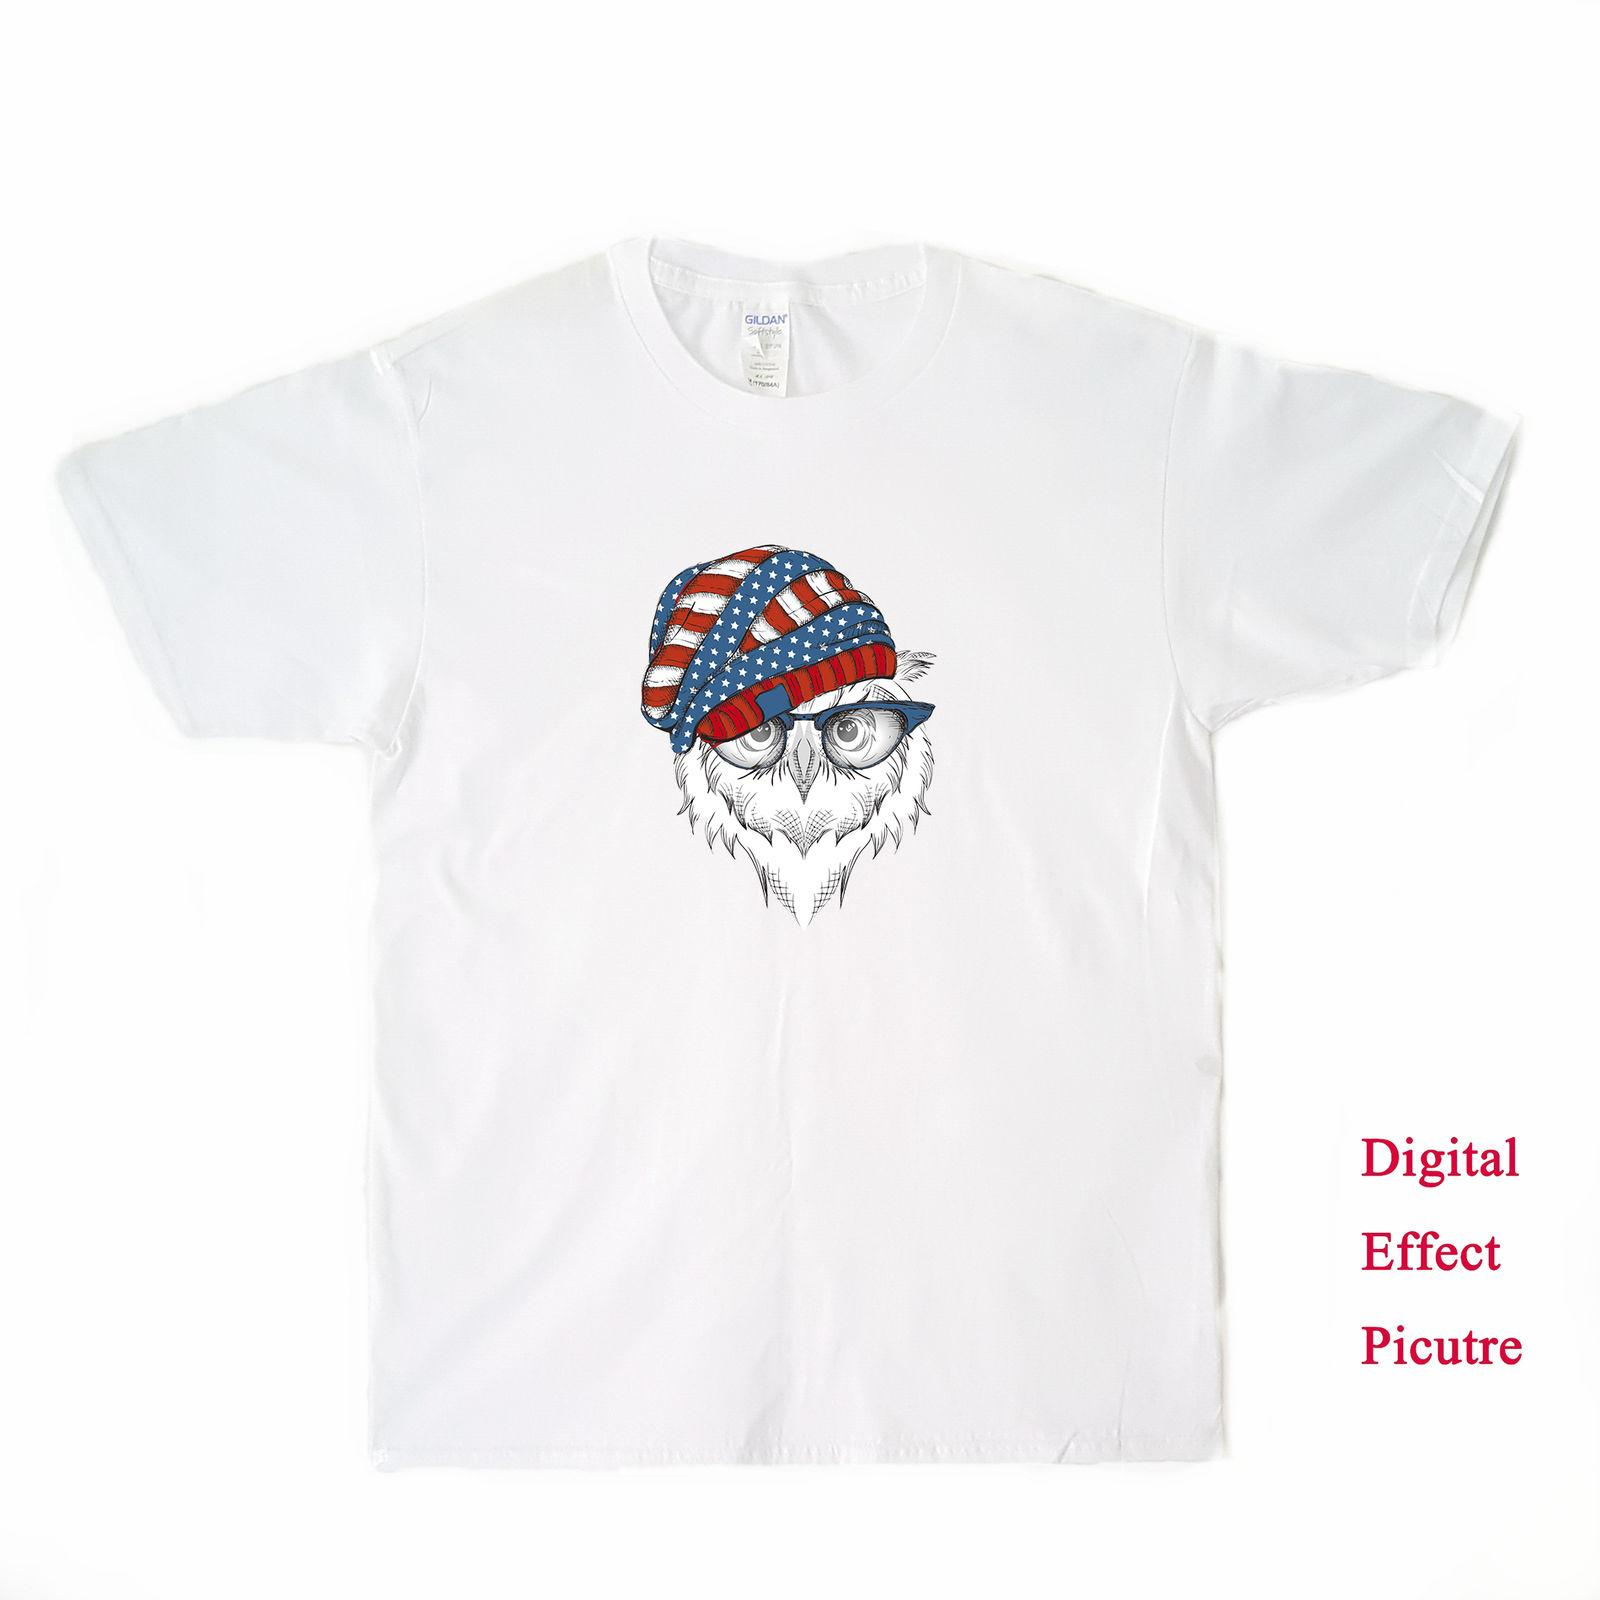 Owl With American Flag Hat Men s T Shirt T Shirts Vintage T Shirts Sale  From Printforless51 40898a1c6a9